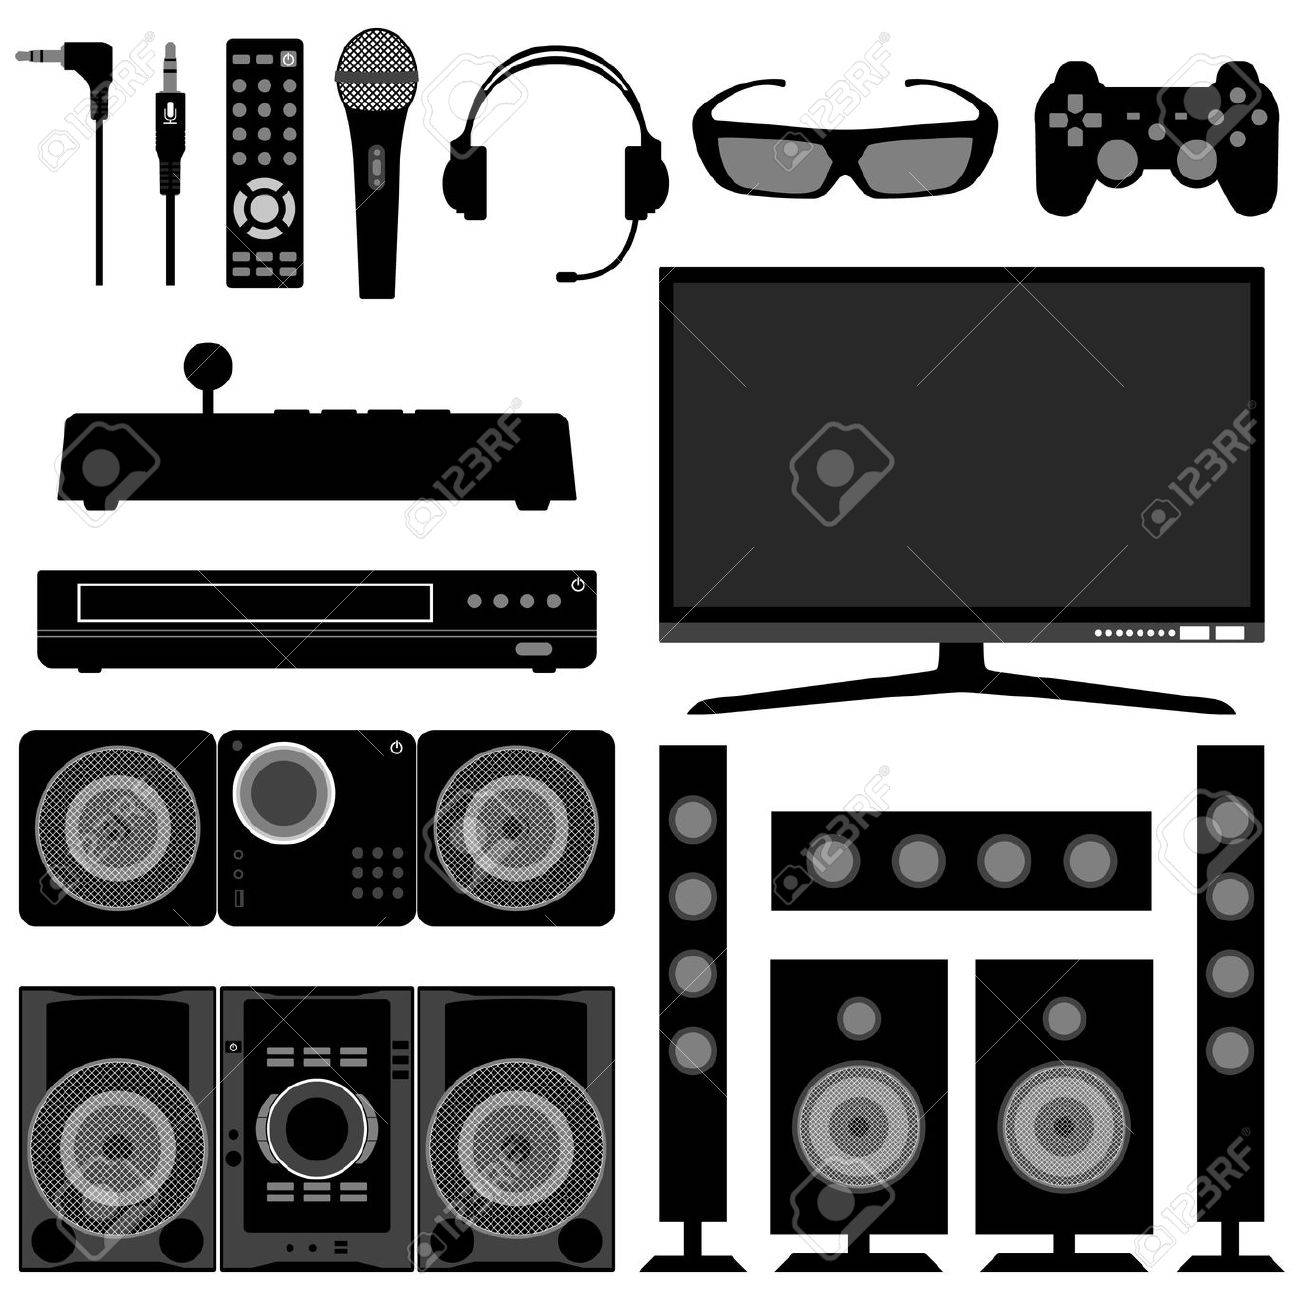 Audio Visual System Electronic Electrical Appliances for Living Room Stock Vector - 18811993